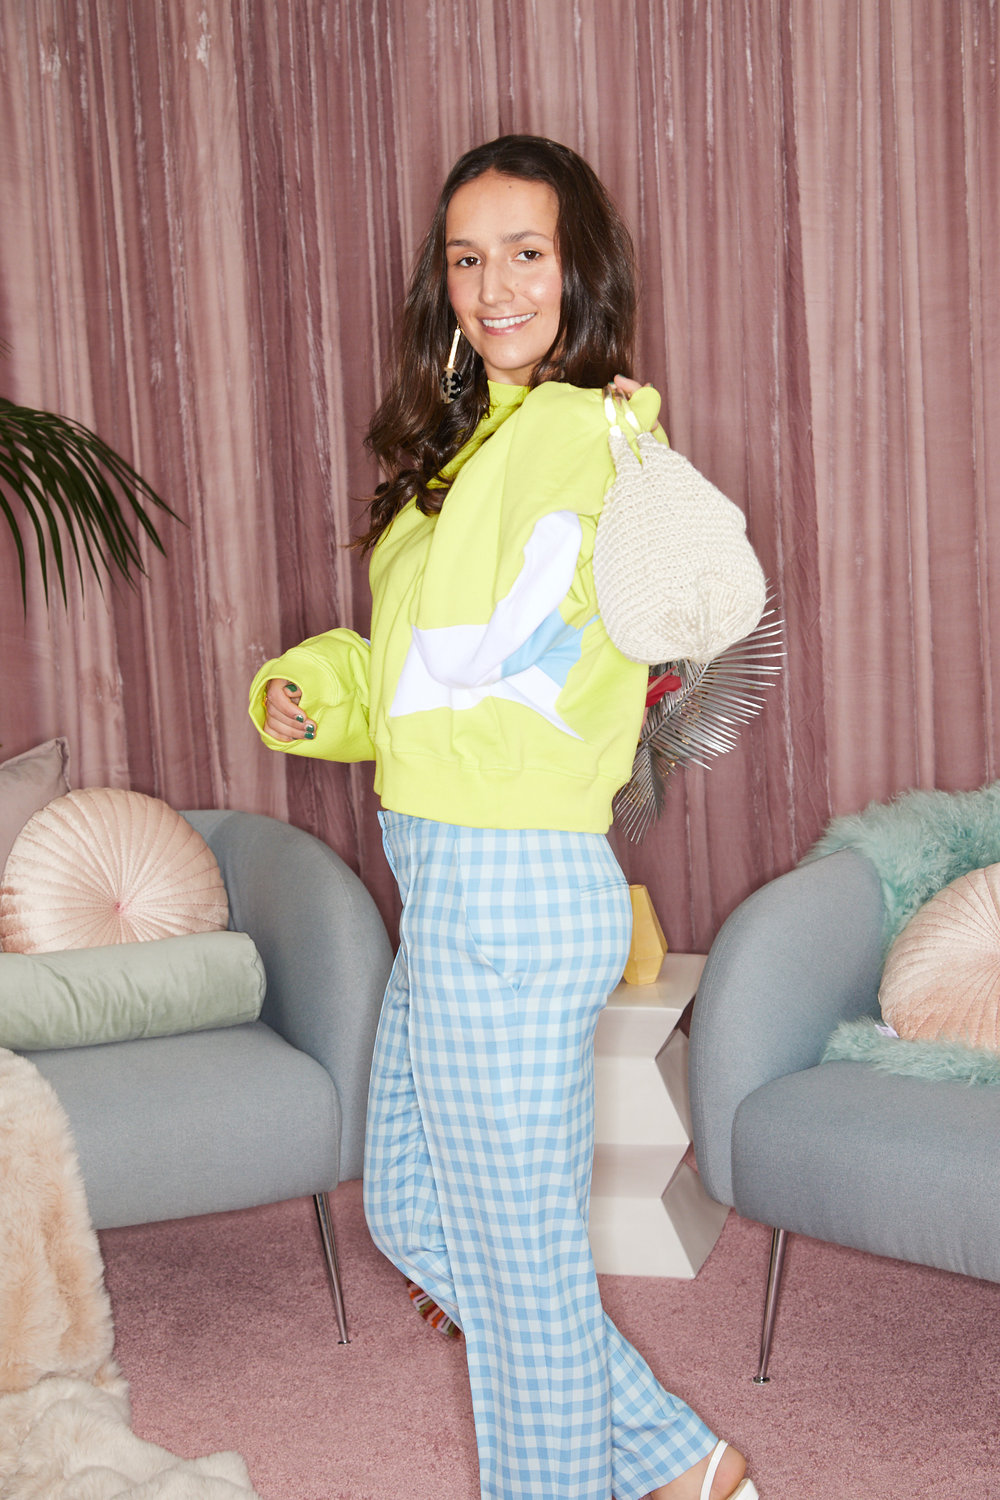 SOPHIE BICKLEY YIN 2MY YANG SHOPBOP STYLEHIGH EVENT NYC SISTER FASHION BLOGGERS 5.jpg